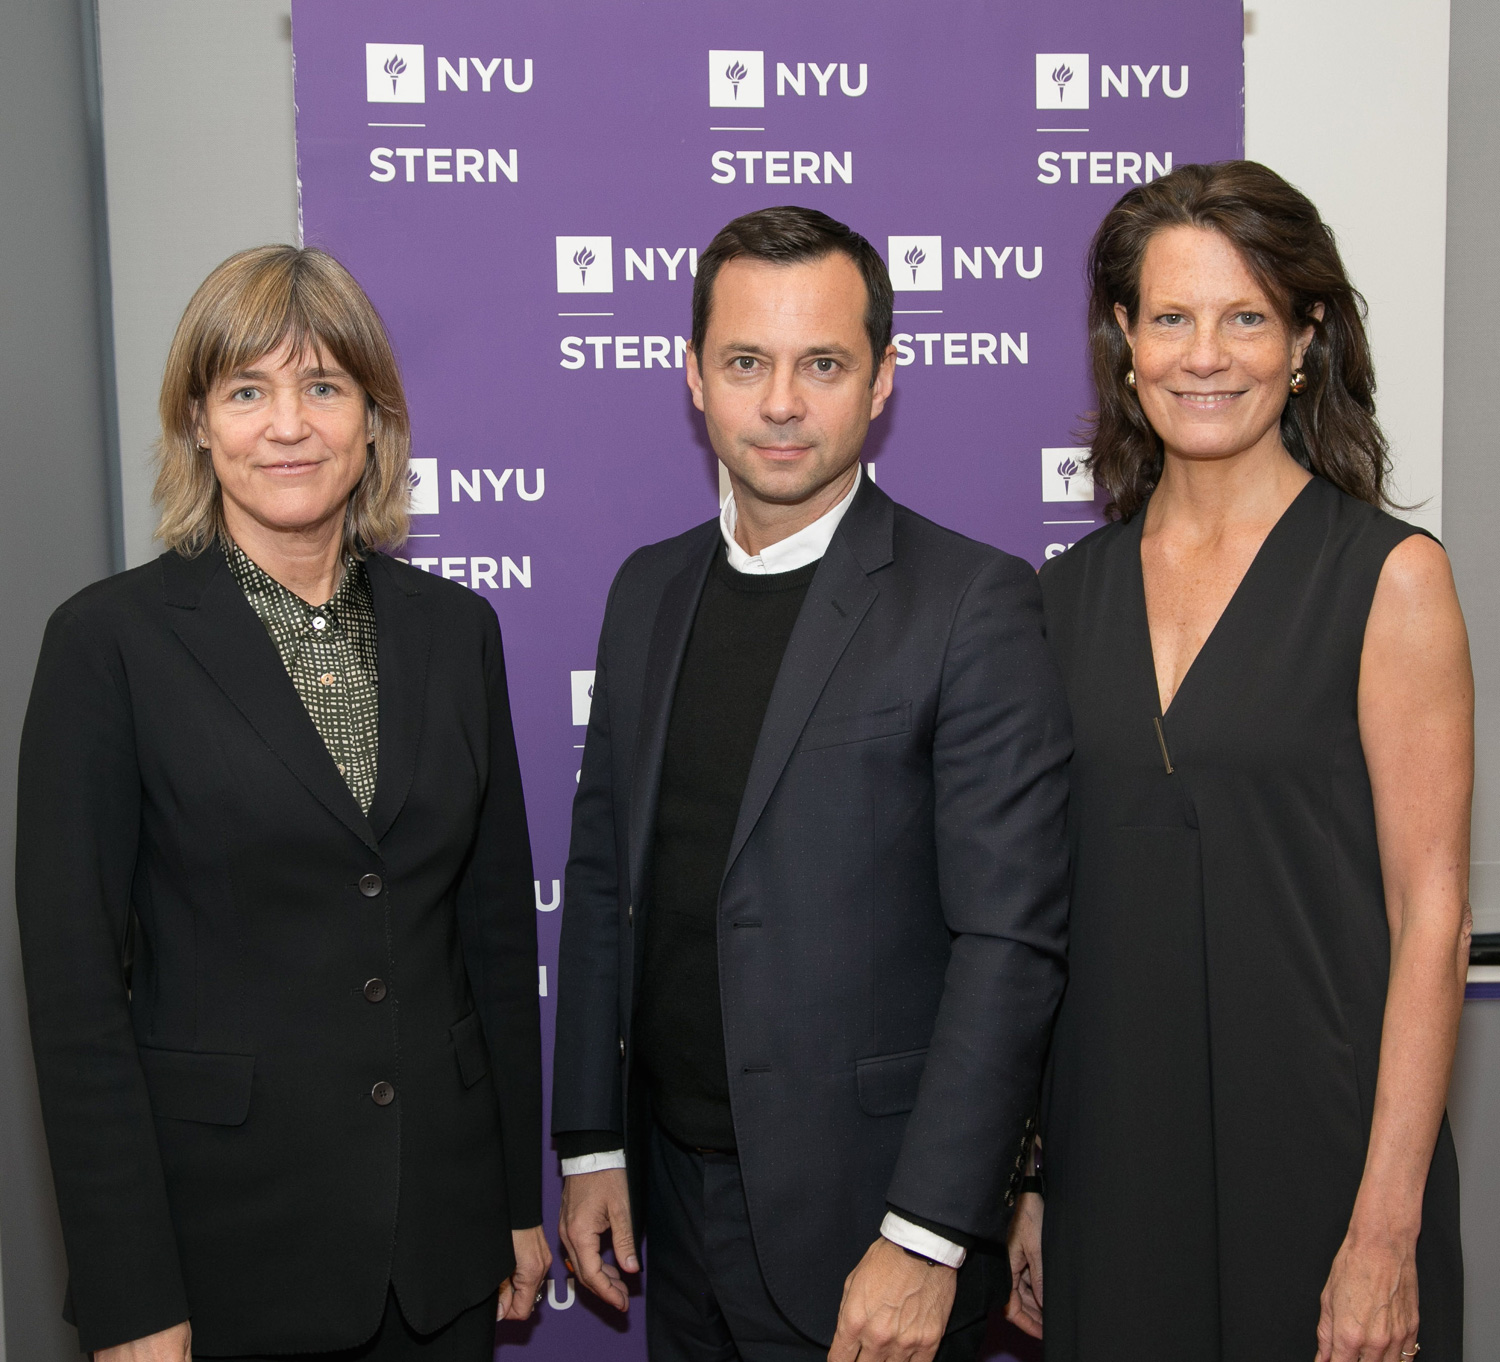 NYU-CSB Director Tensie Whelan; Laurent Claquin, Head Kering Americas; and ISSP-NYC Founding Co-Chair Trisha Bauman